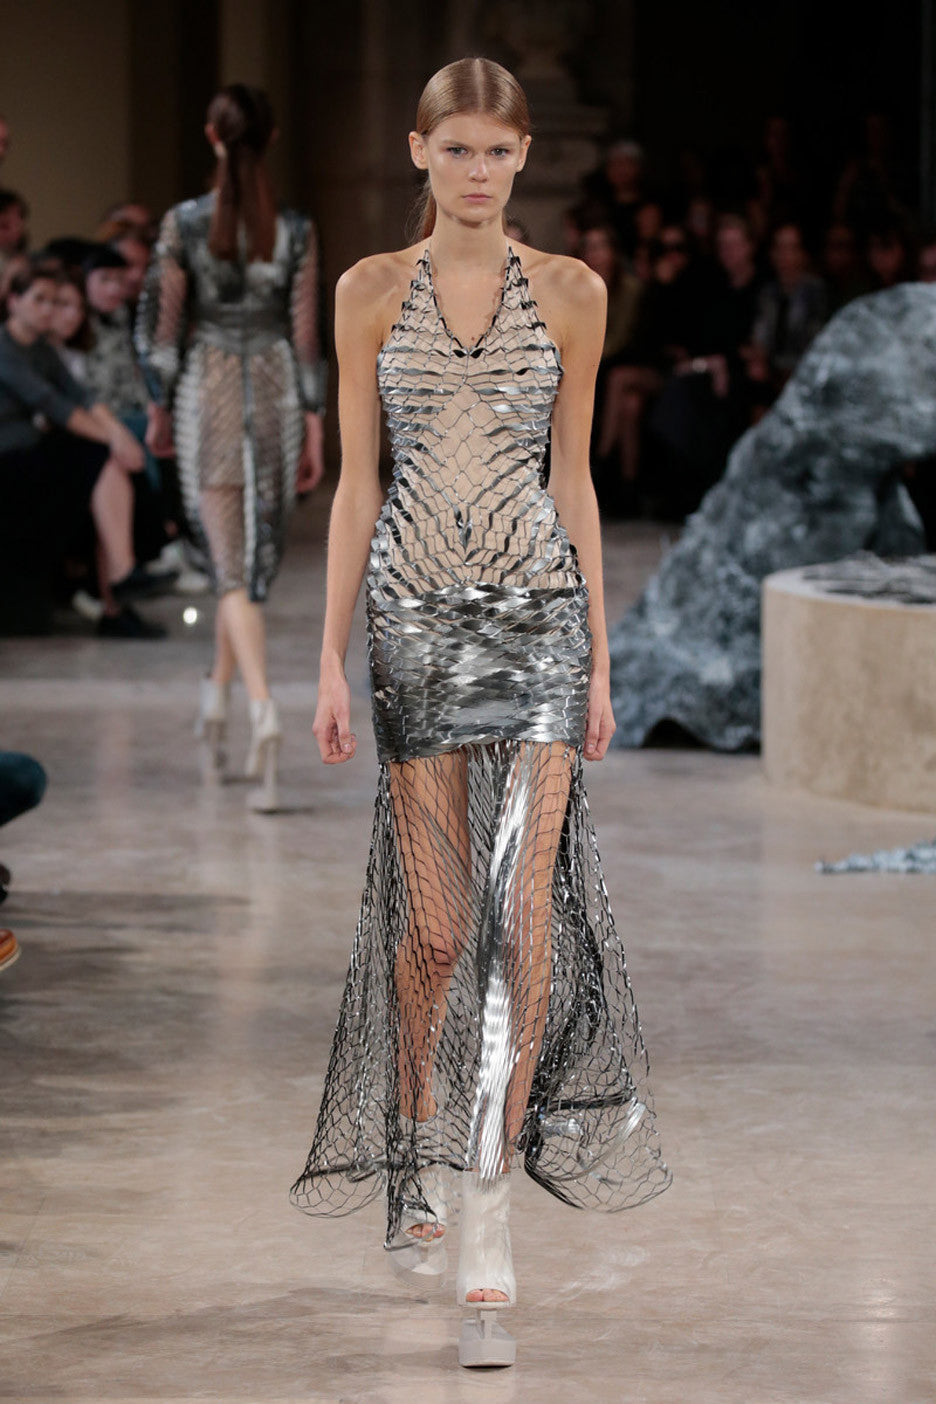 Fashion Blog - Extraordinary Ordinary Day EOD Iris Van Herpen's Spring Summer 2016 Show